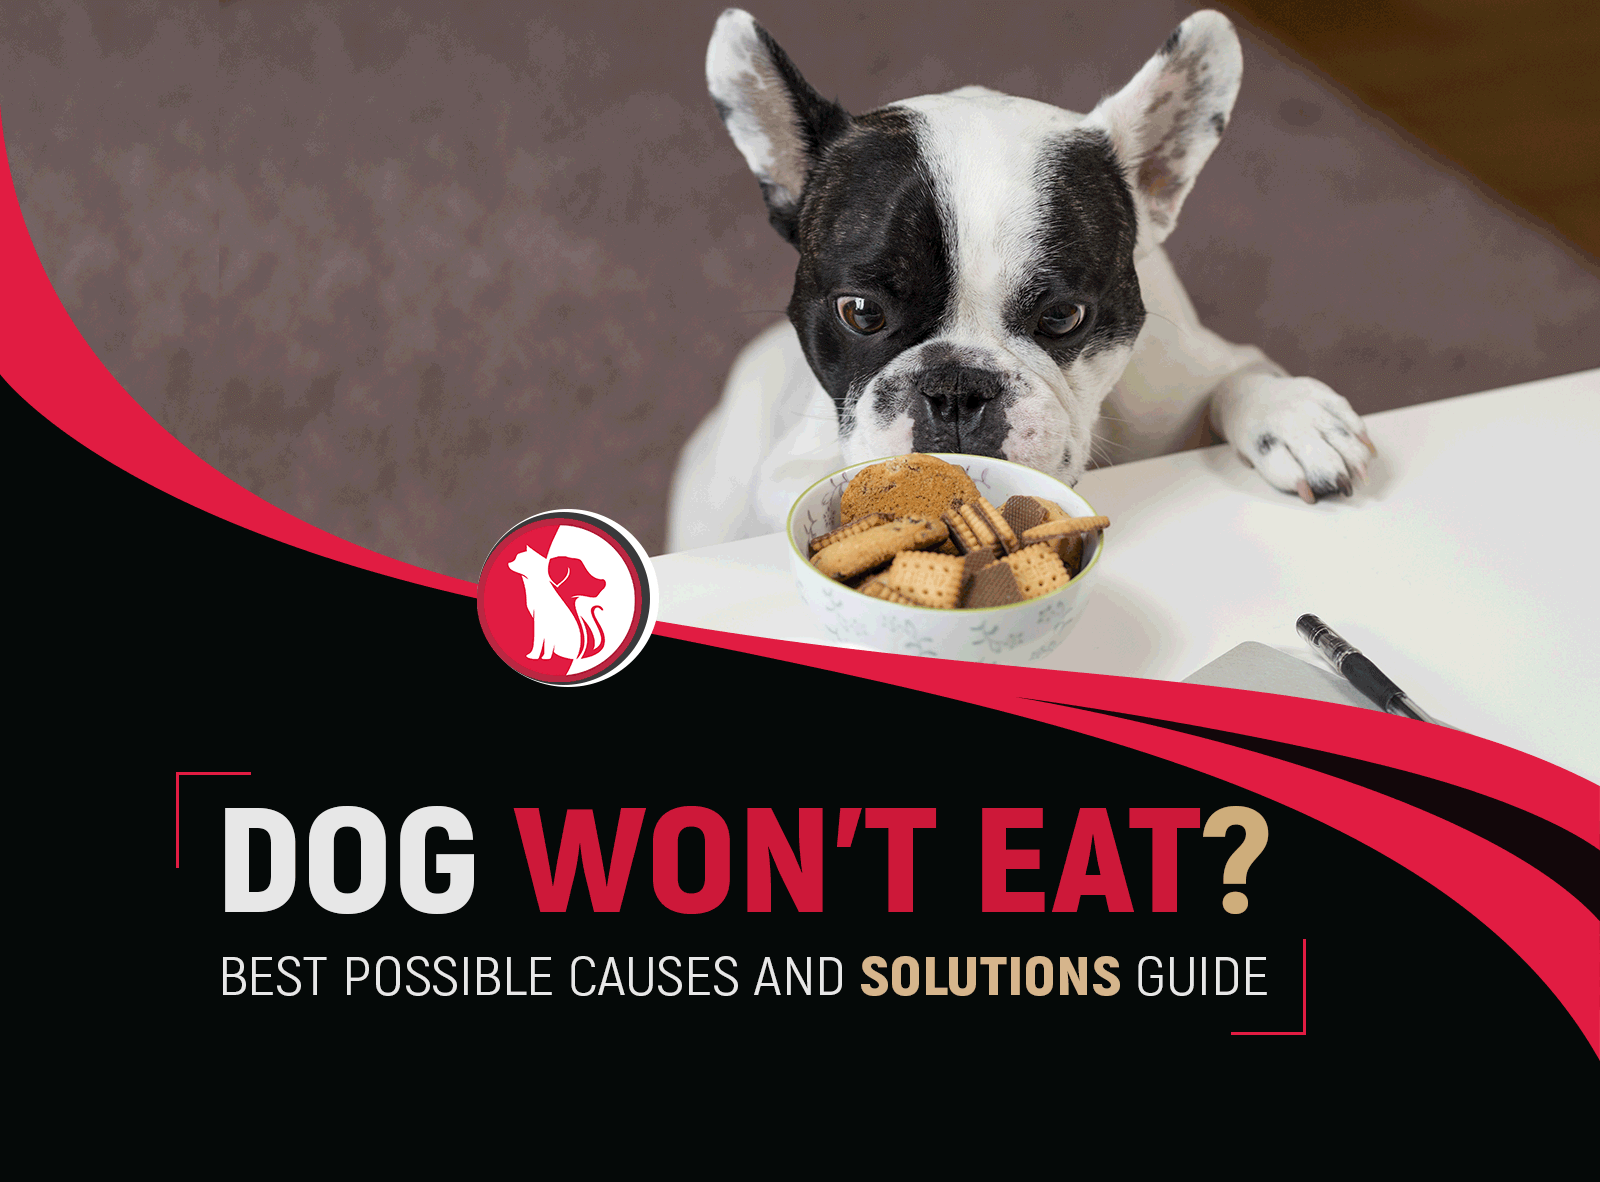 DOG WON'T EAT? BEST POSSIBLE CAUSES AND APPETITE SOLUTIONS GUIDE